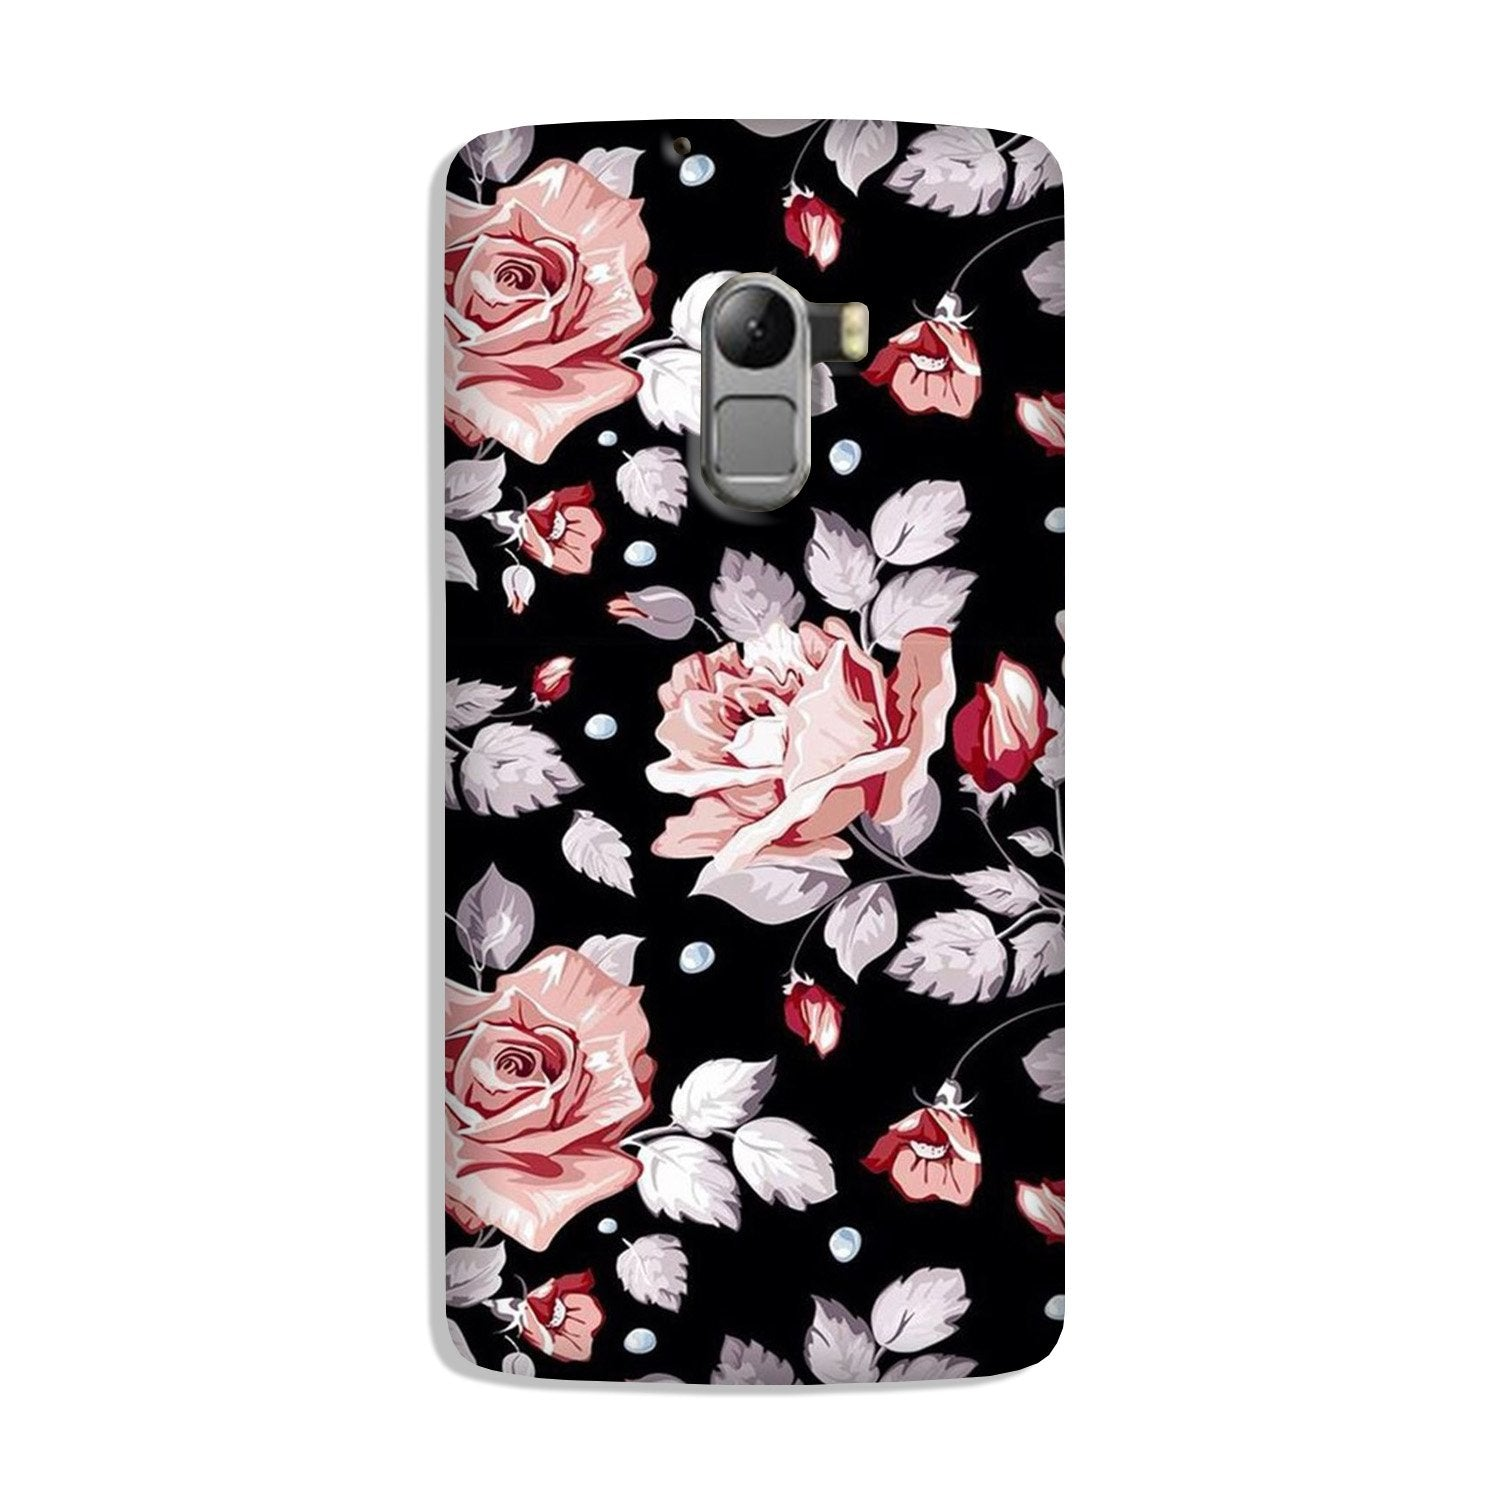 Pink rose Case for Lenovo K4 Note